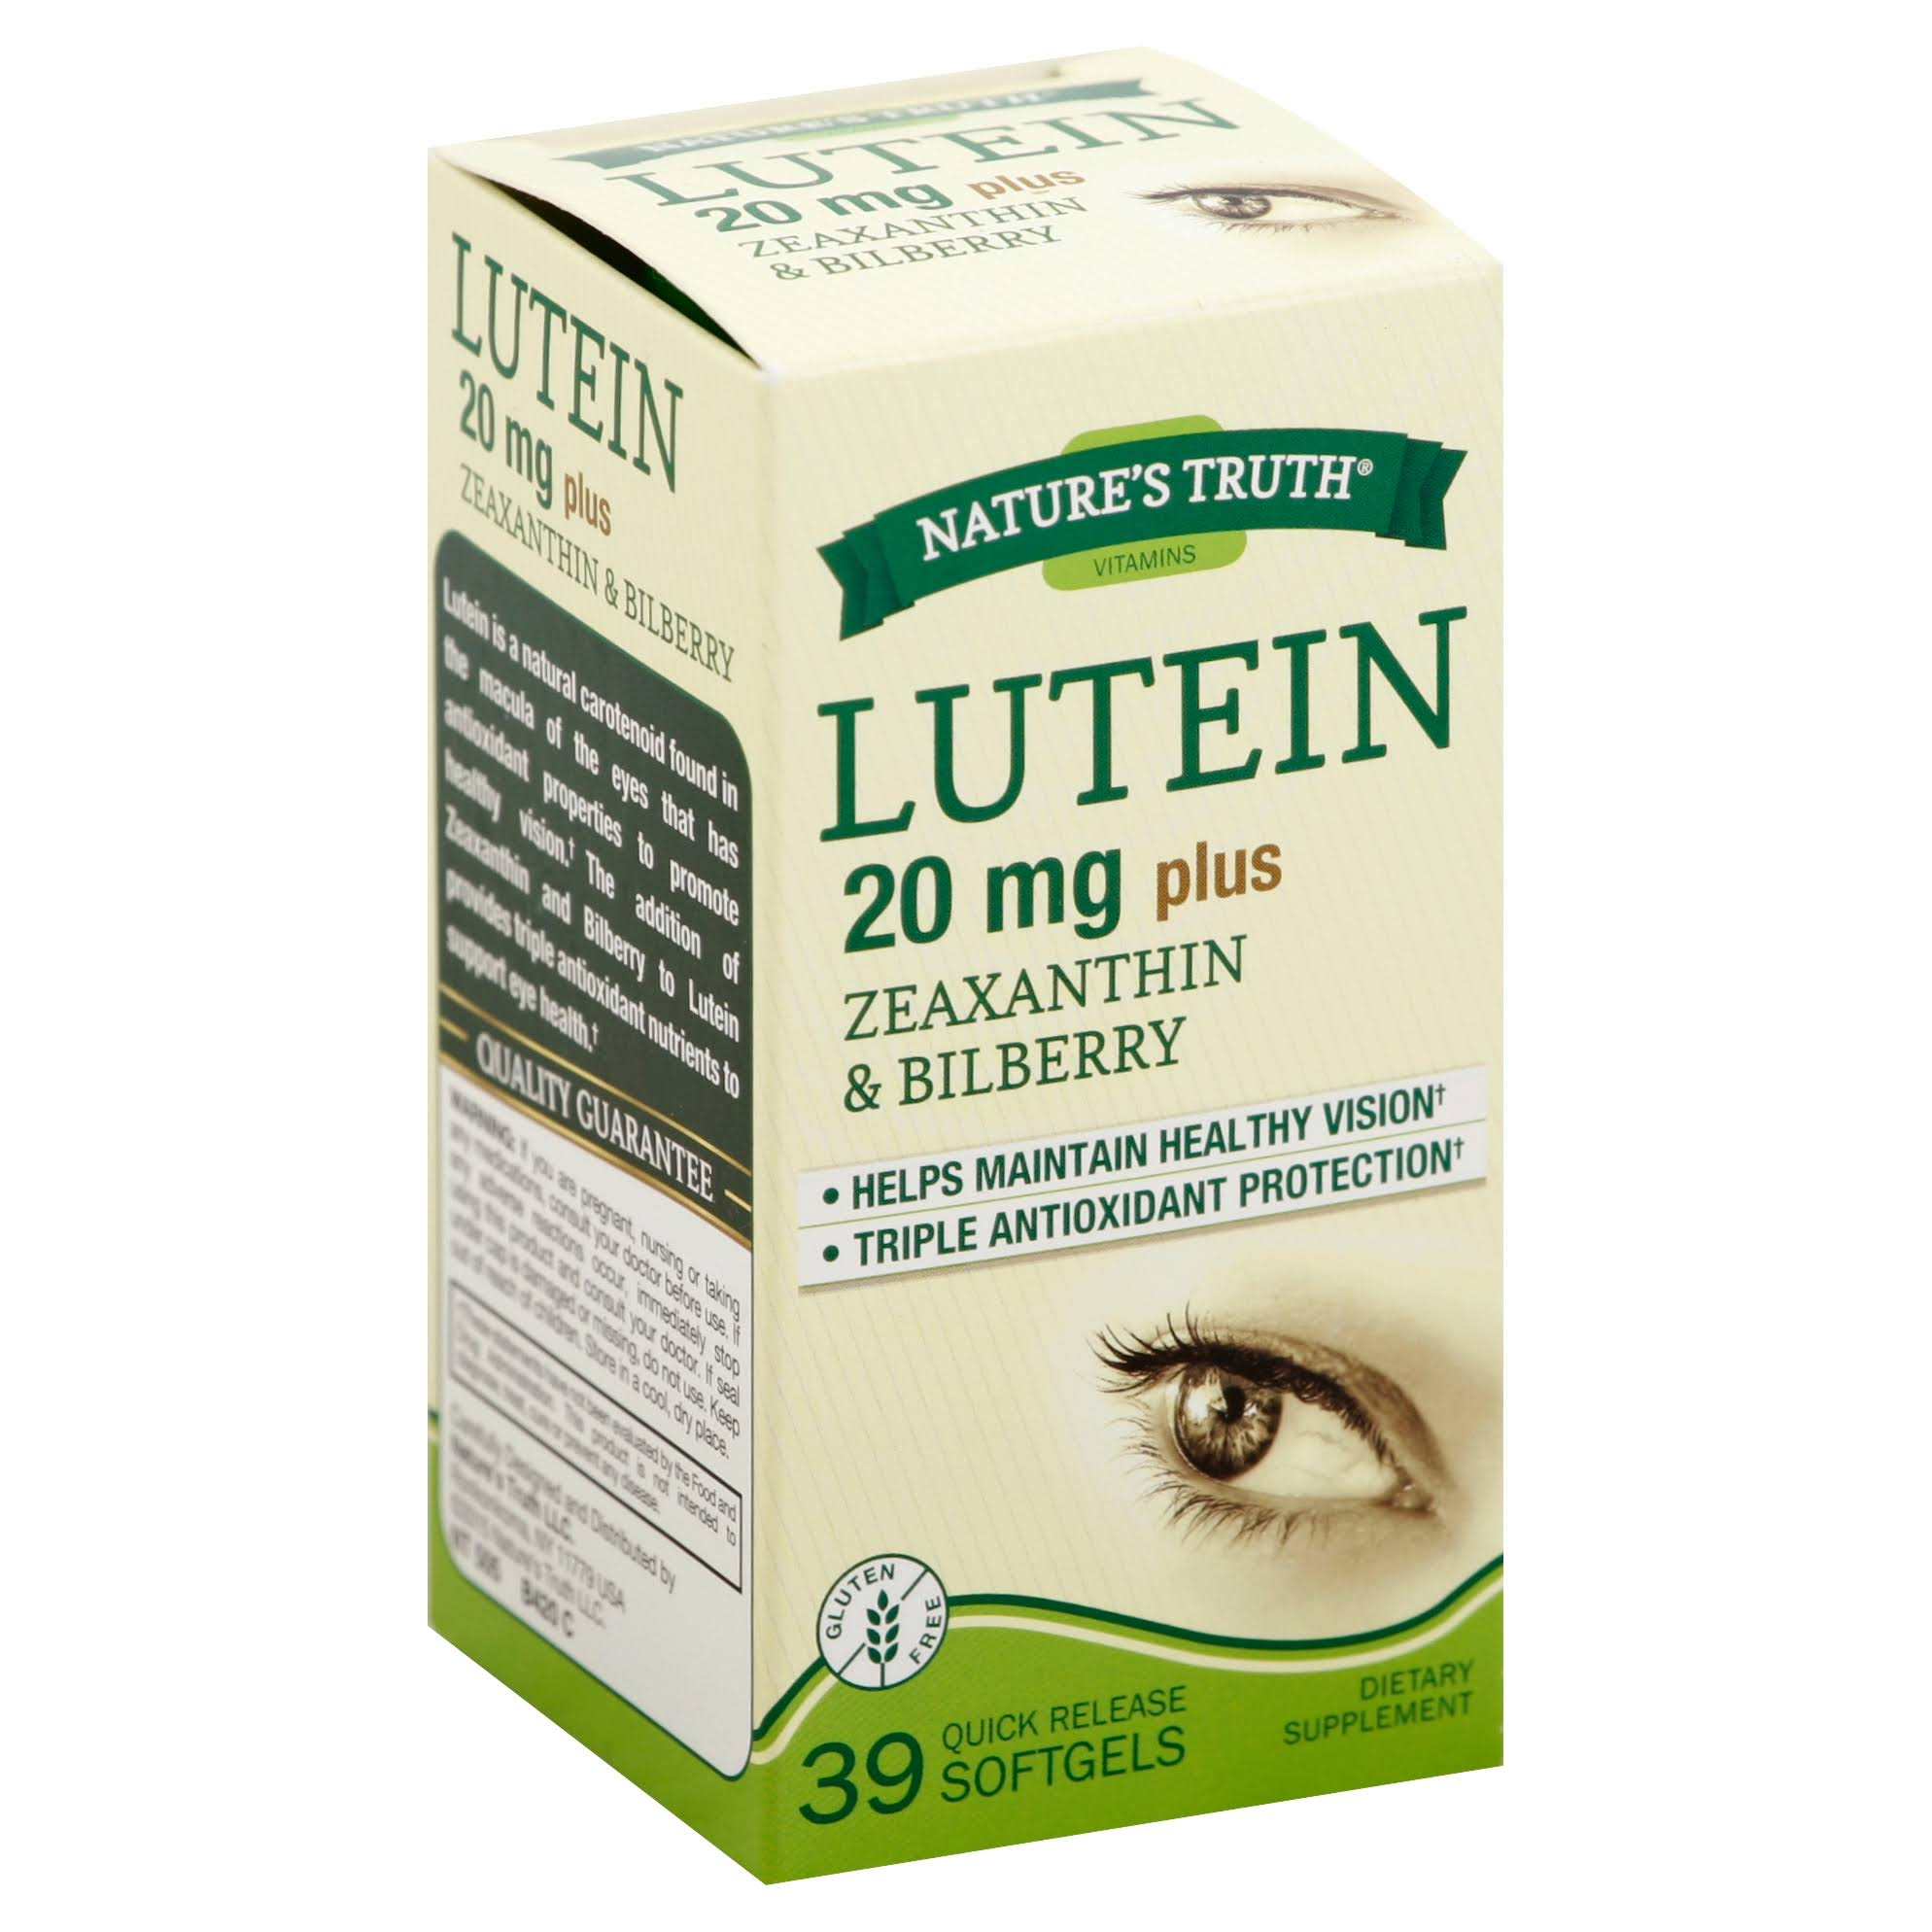 Nature's Truth Lutein Dietary Supplement - 20mg, 39 Softgels